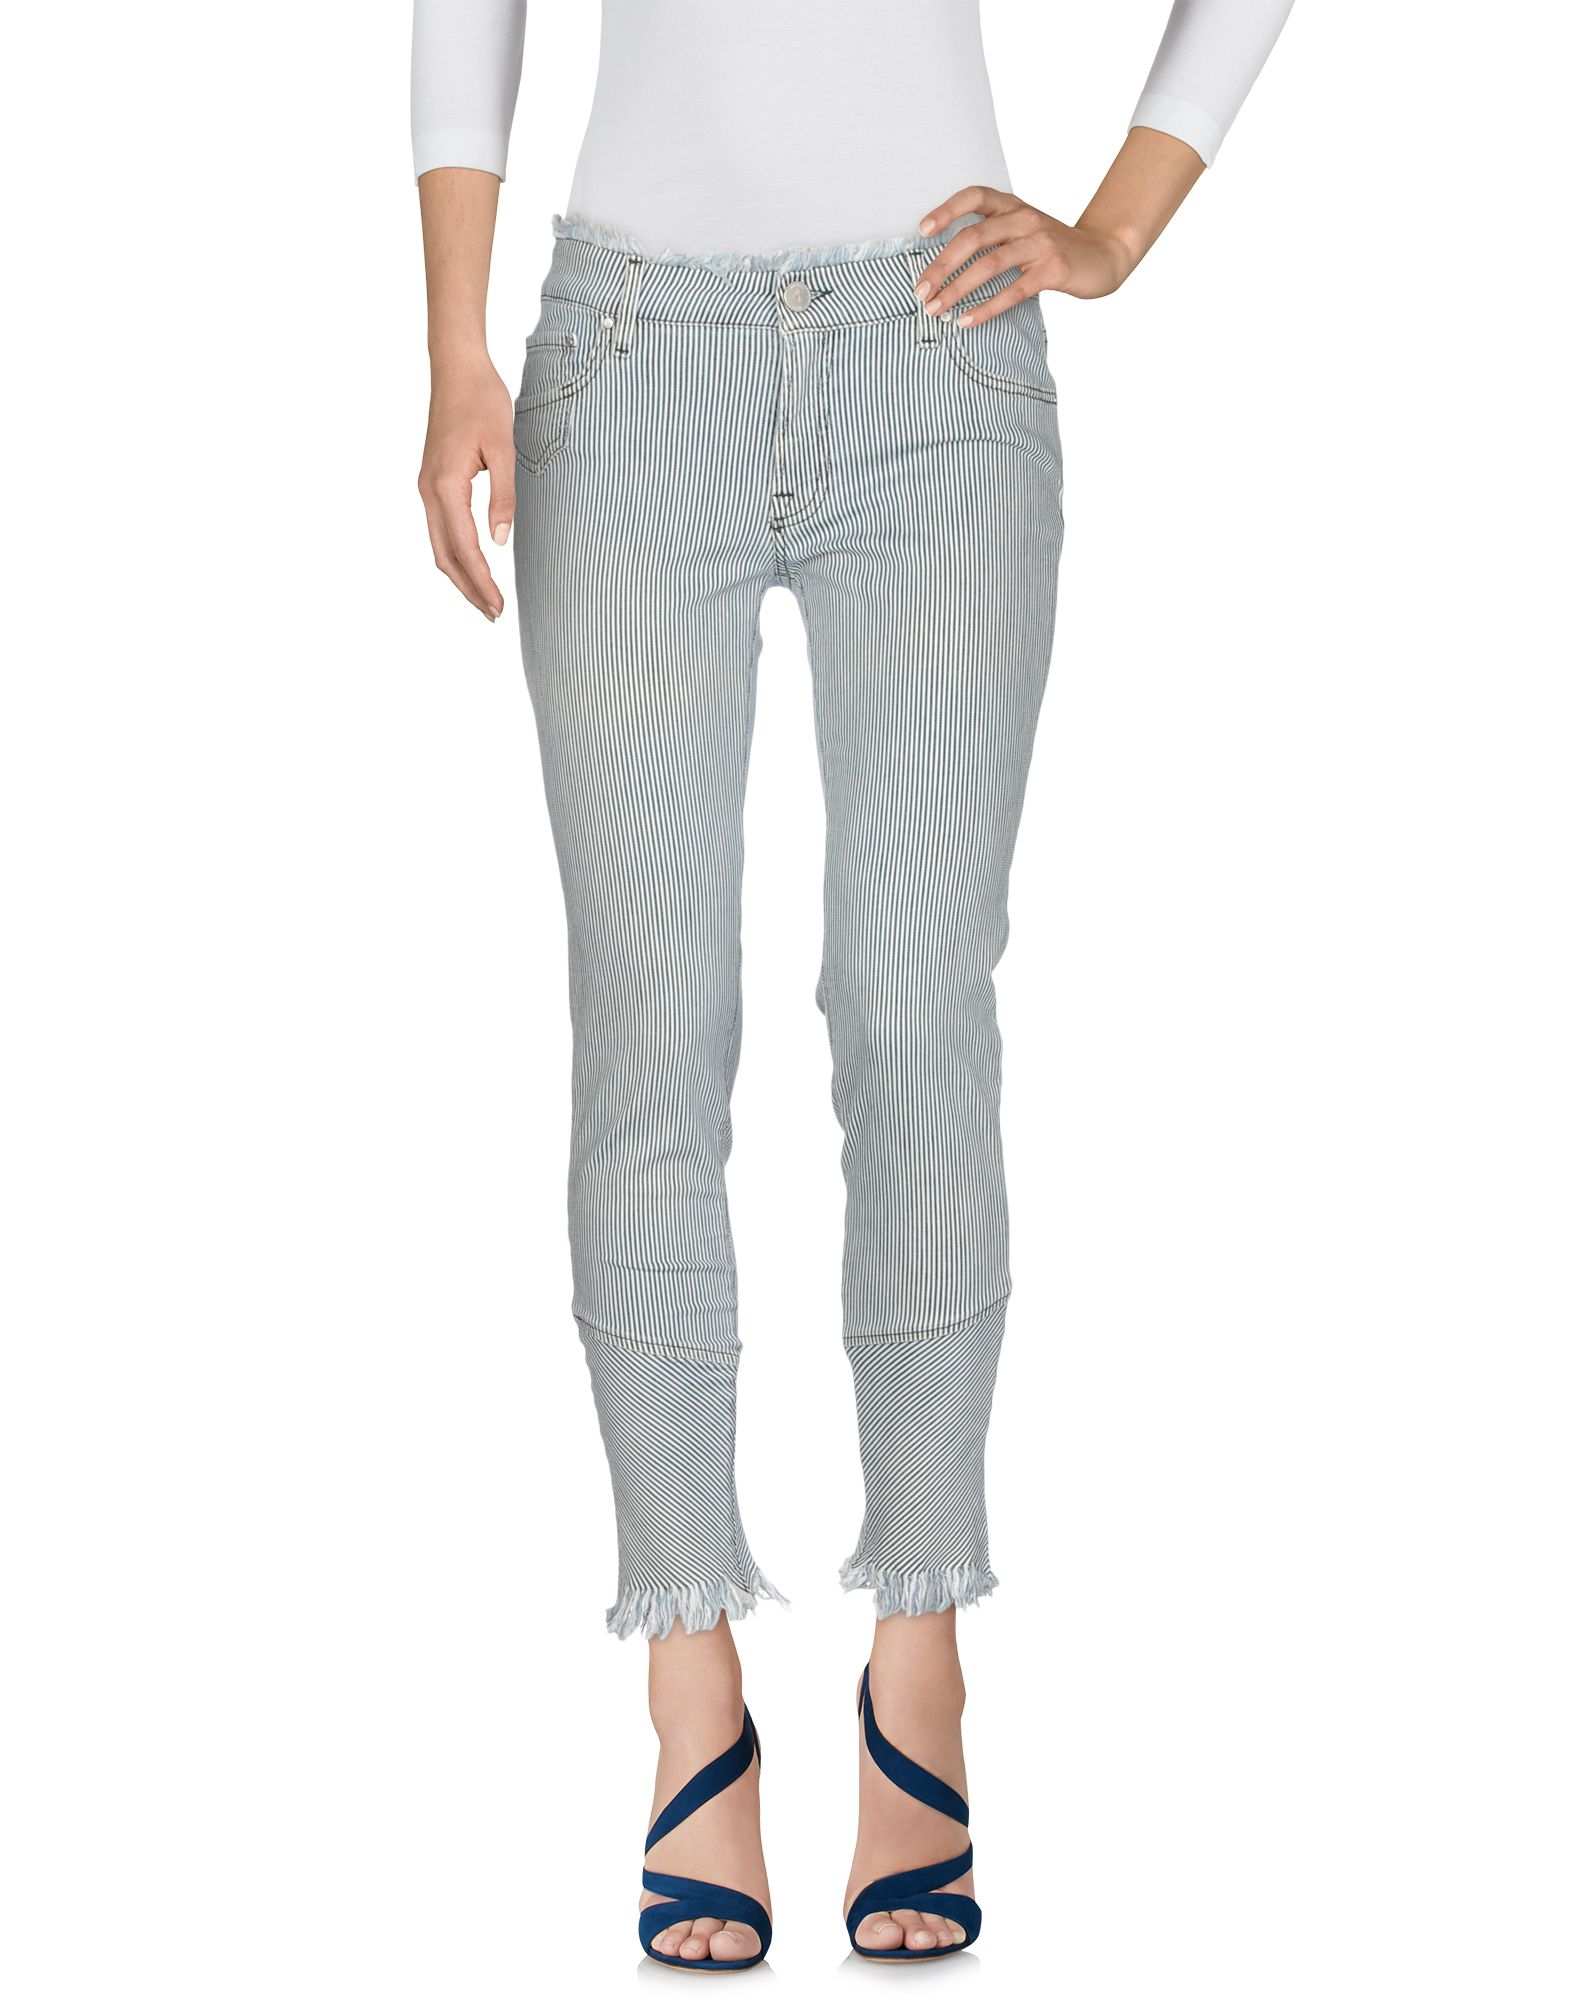 DON'T CRY Denim Pants in Blue